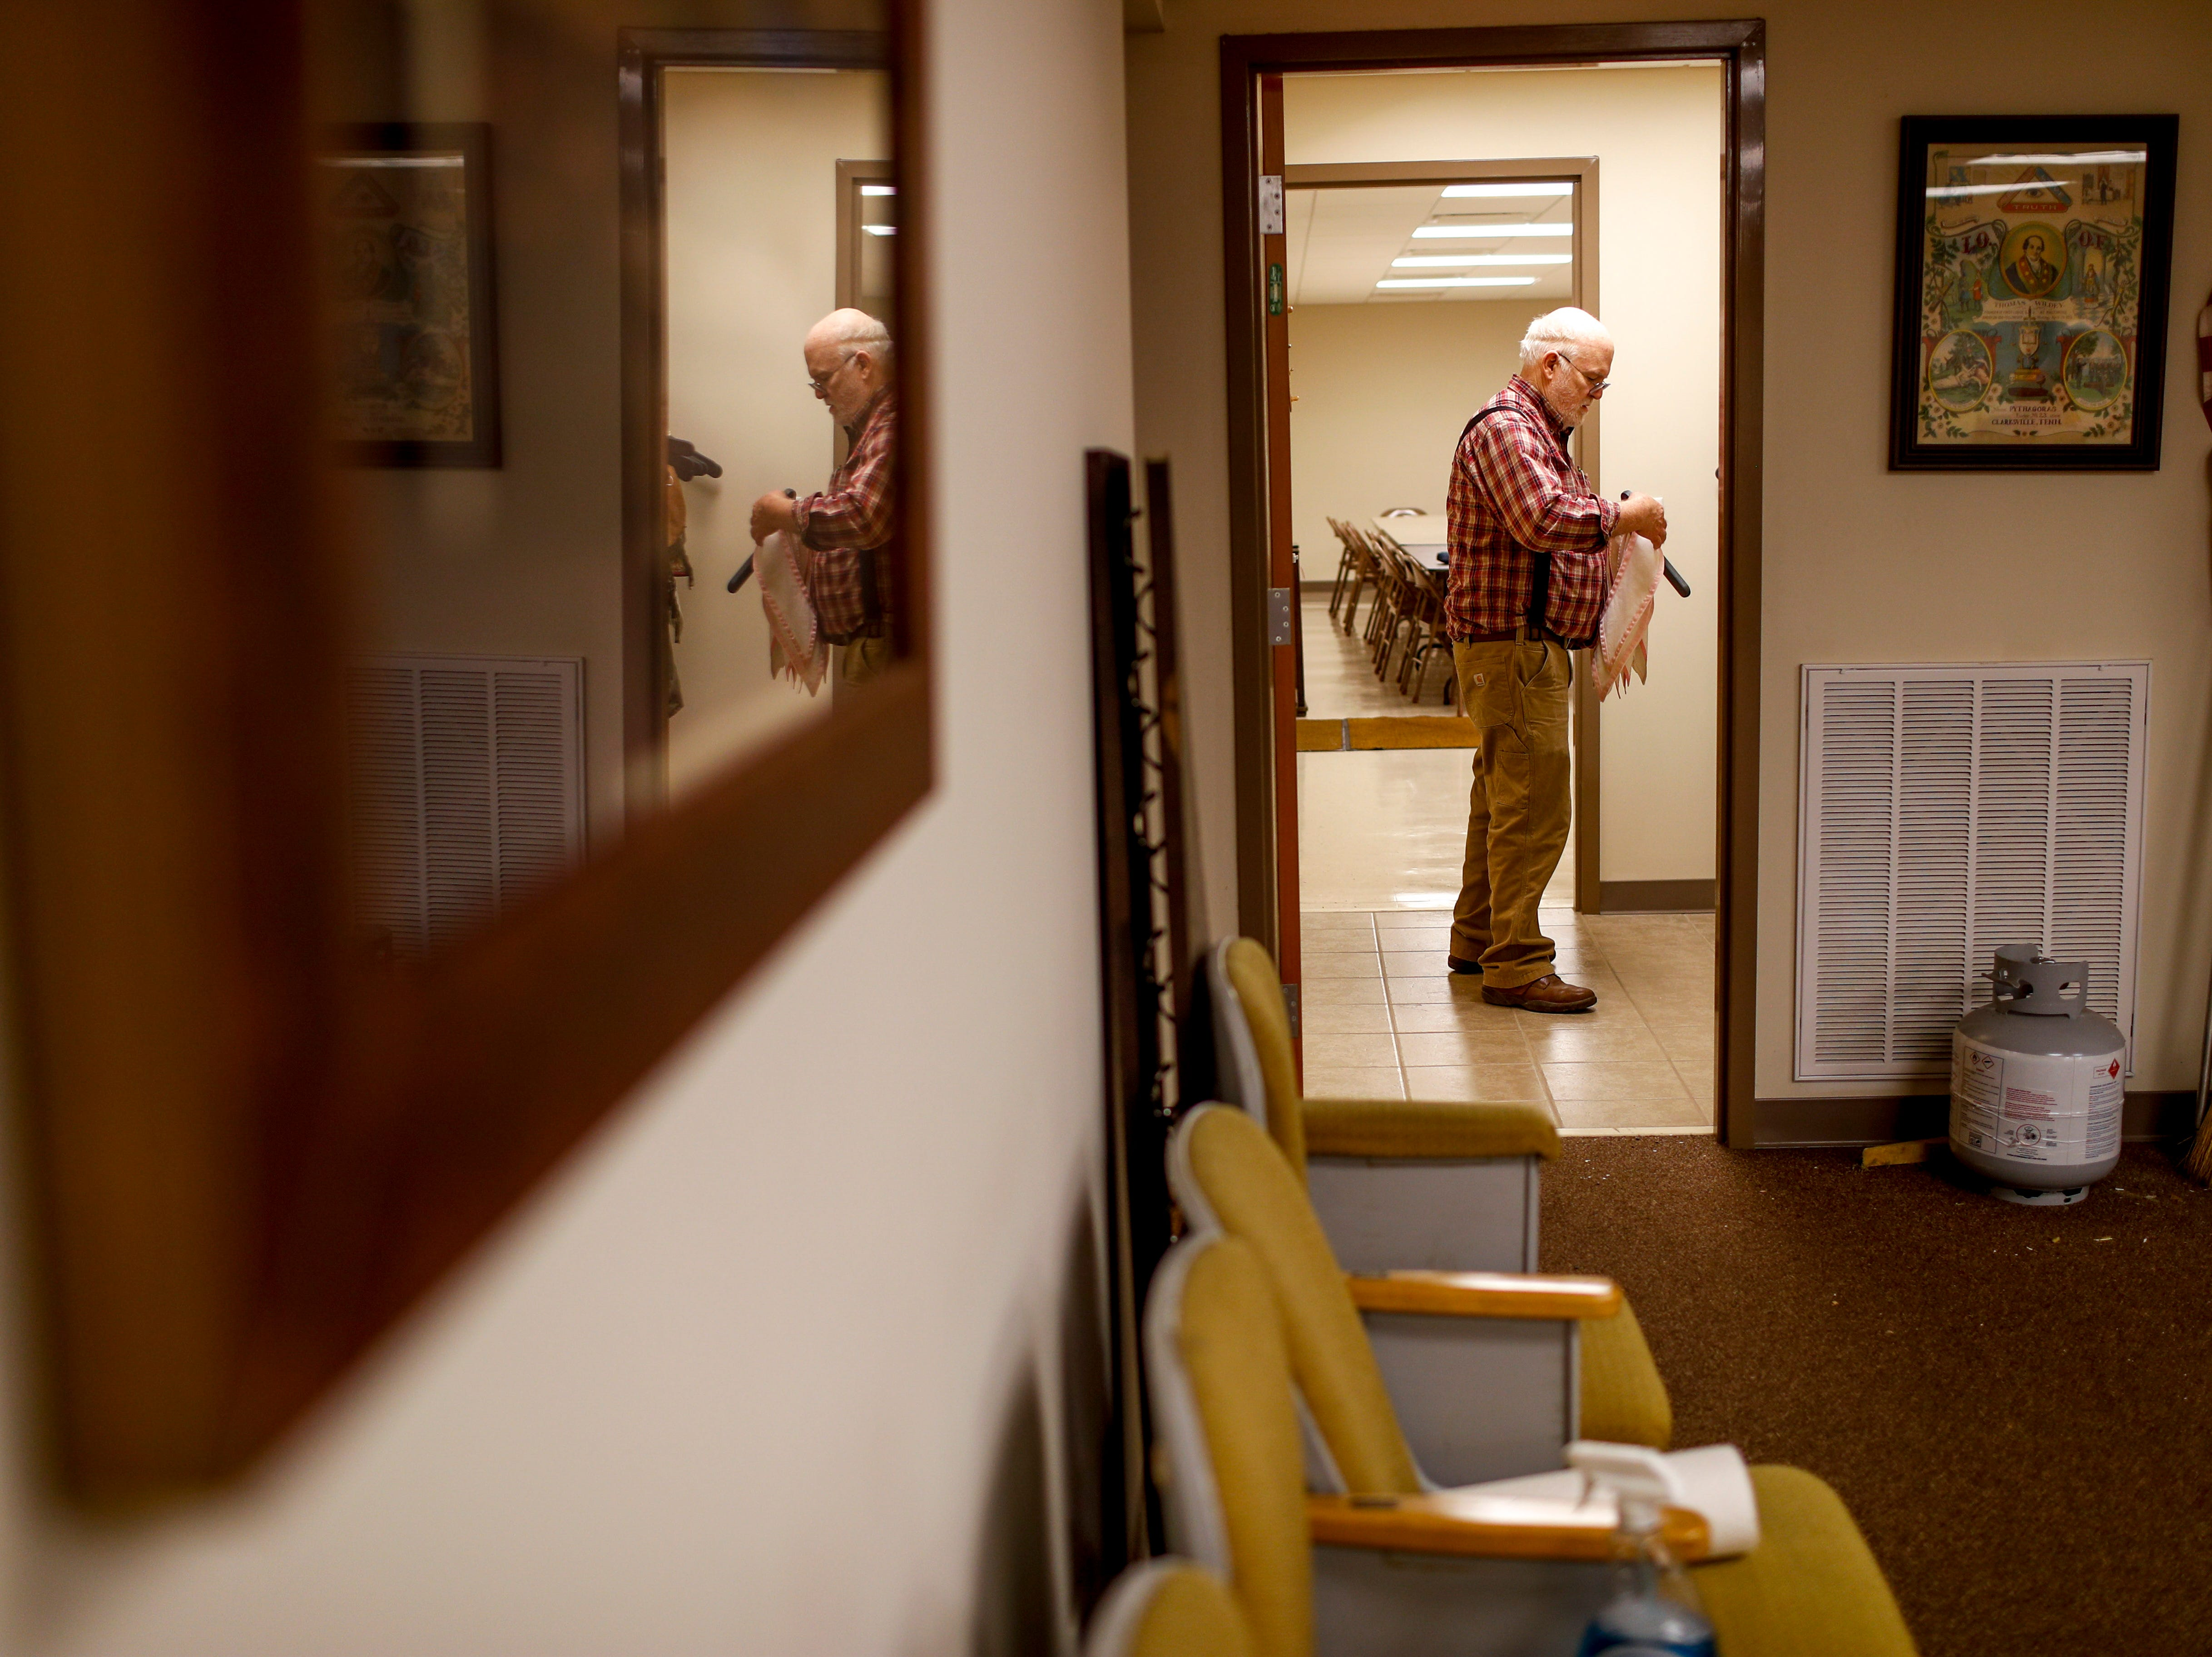 Carl Edwards takes different sashes and hangs them up in a side room at Odd Fellows Lodge in Clarksville, Tenn., on Tuesday, April 23, 2019.